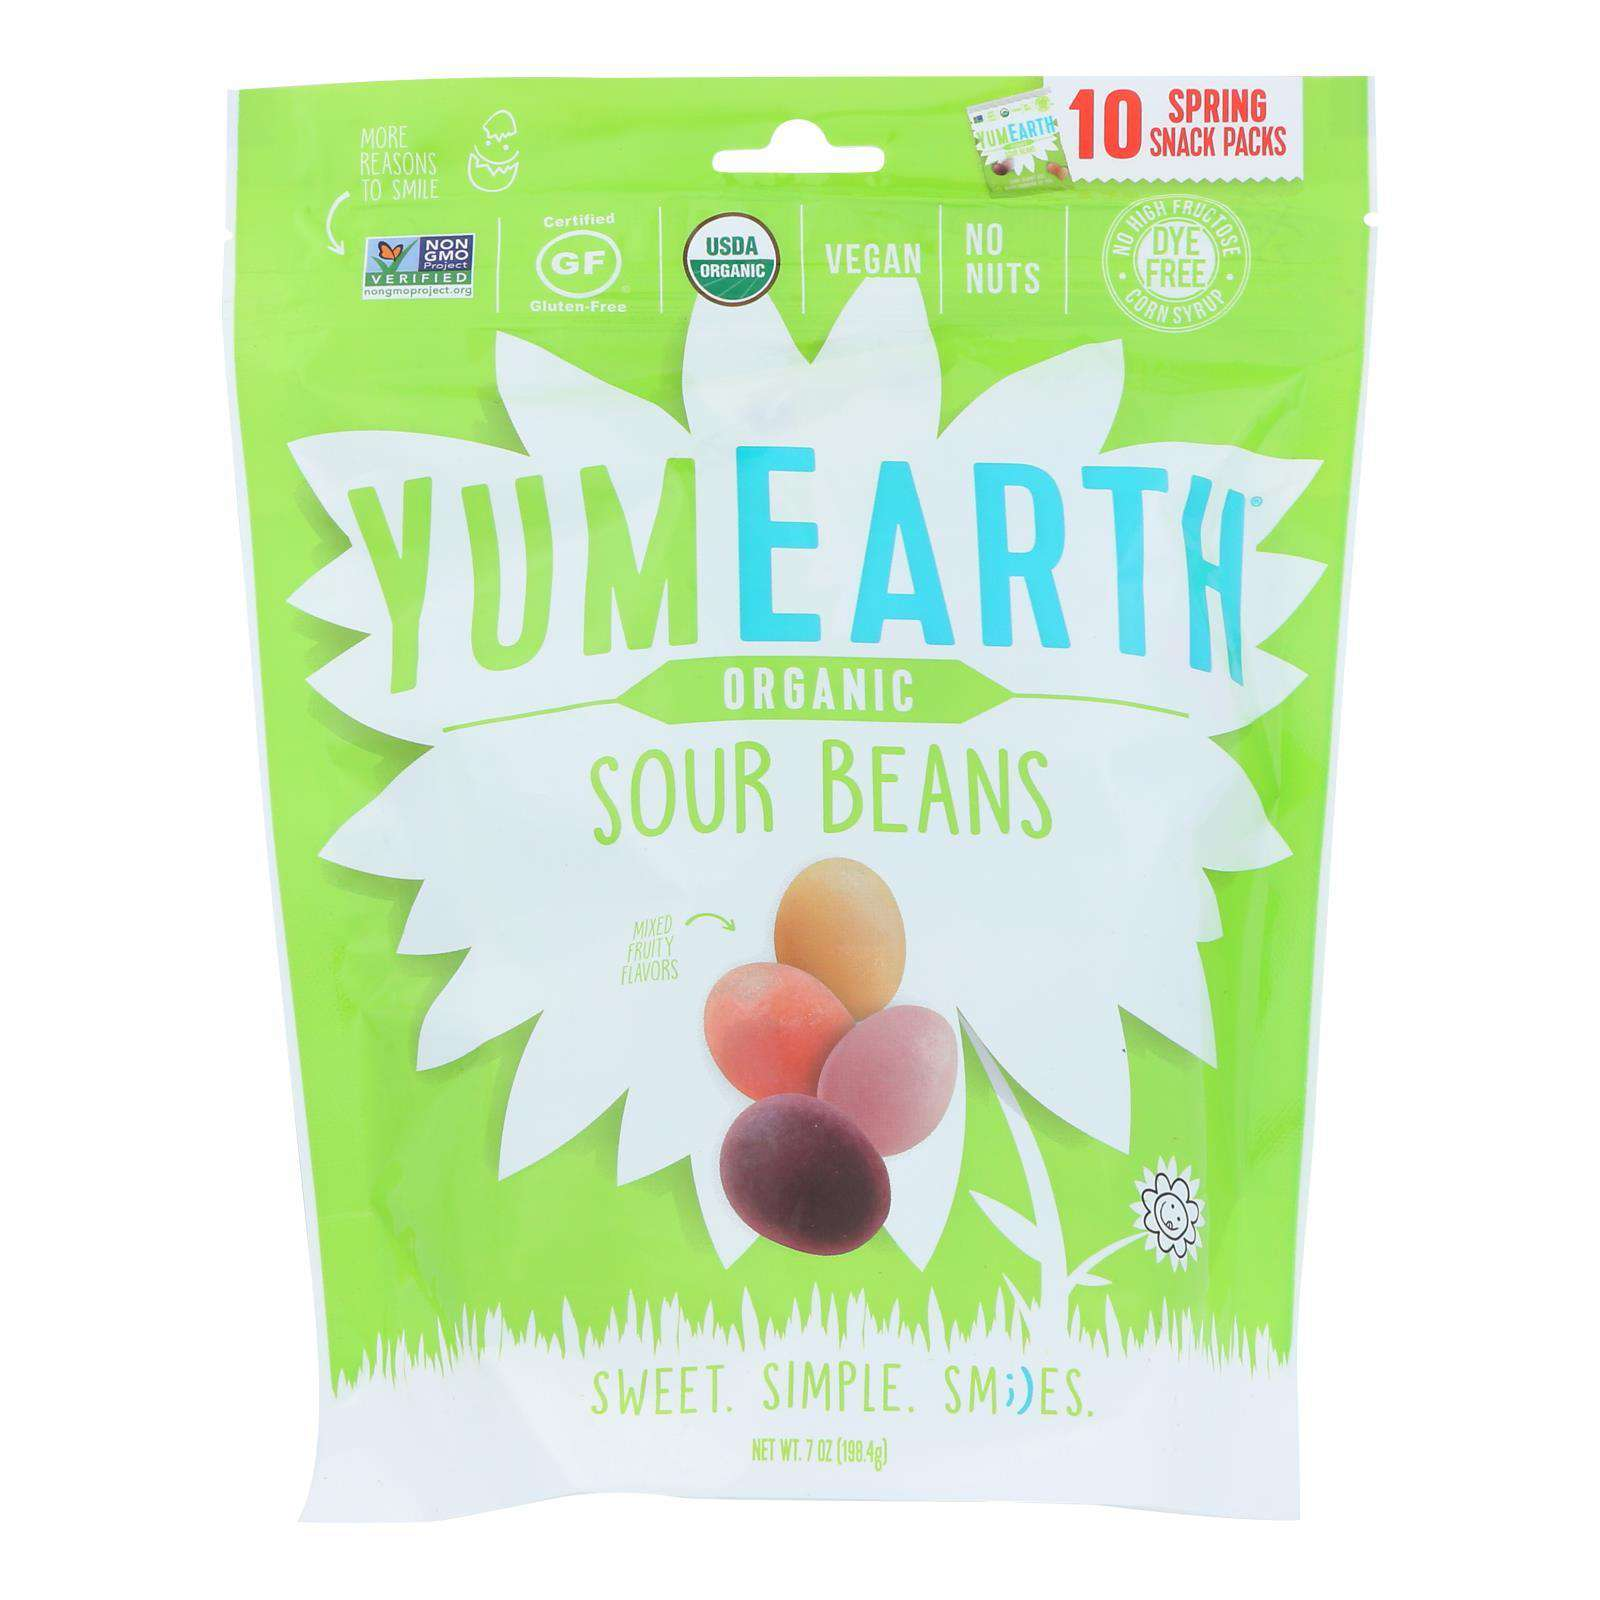 Yumearth - Candy Og2 Sour Beans - Cs Of 18-7 Oz - BeeGreen